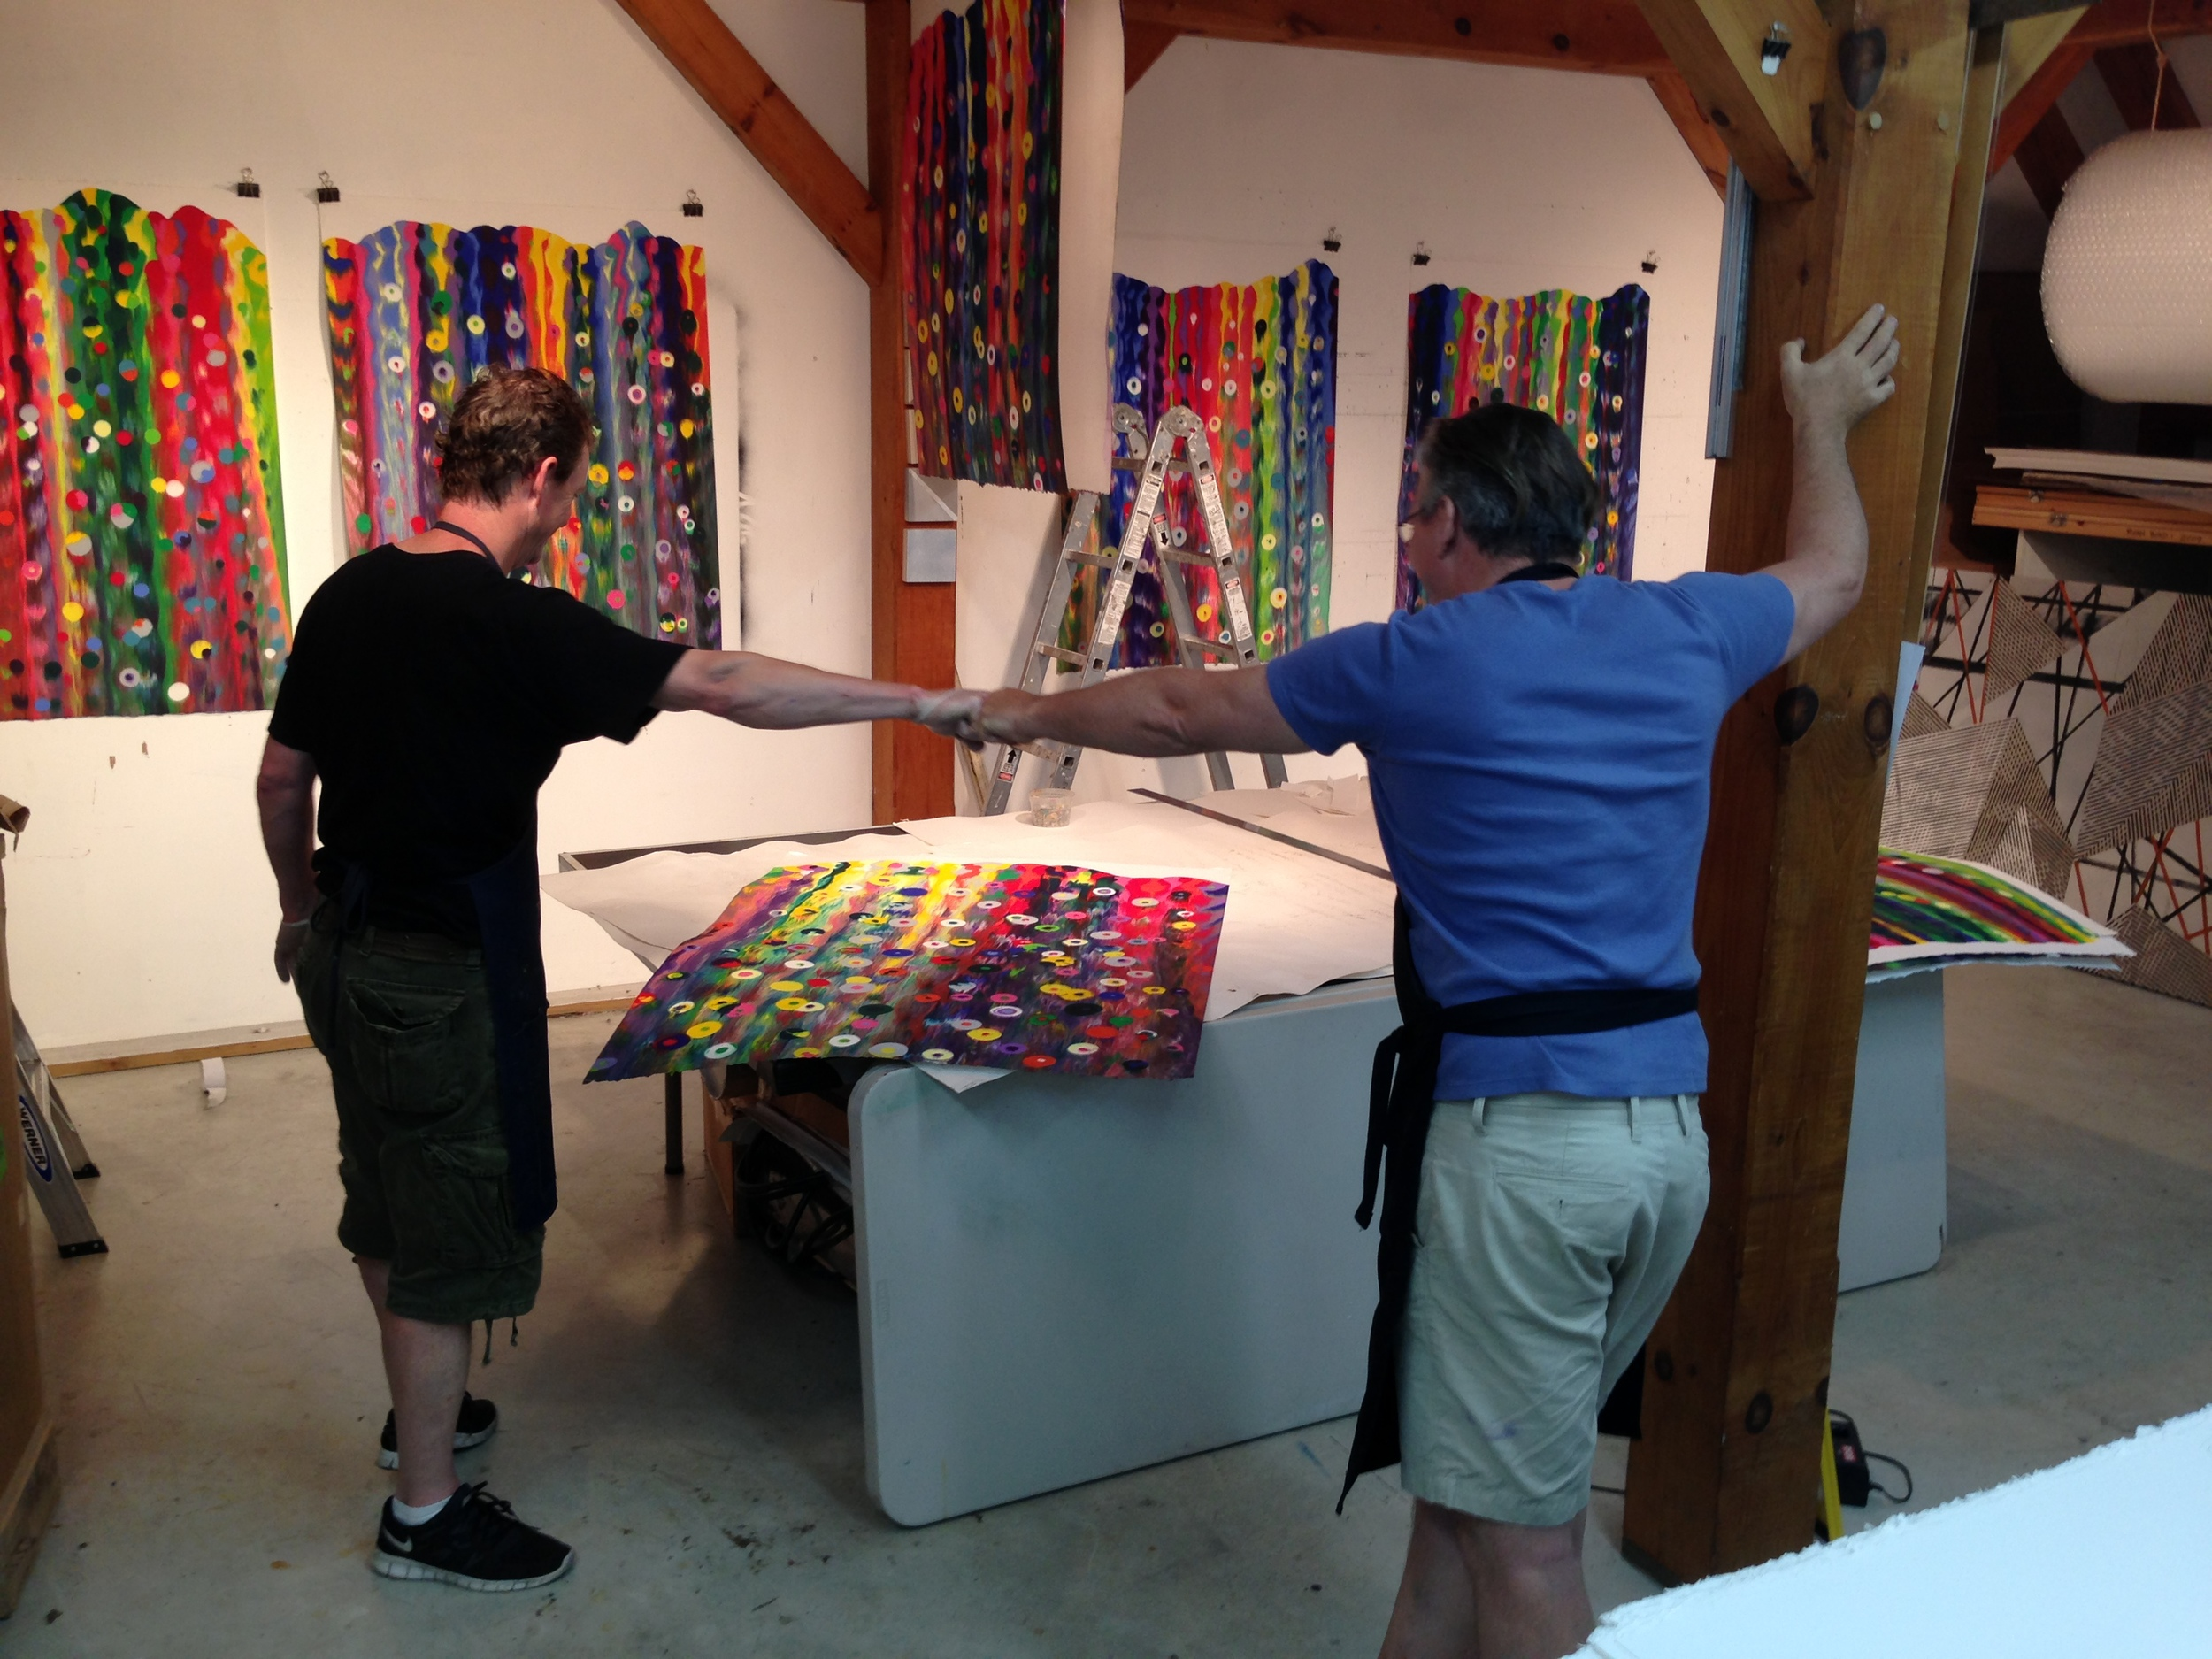 A satisfying fist bump. James Stroud and Markus Linnenbrink celebrate another successful monotype fresh off the press.